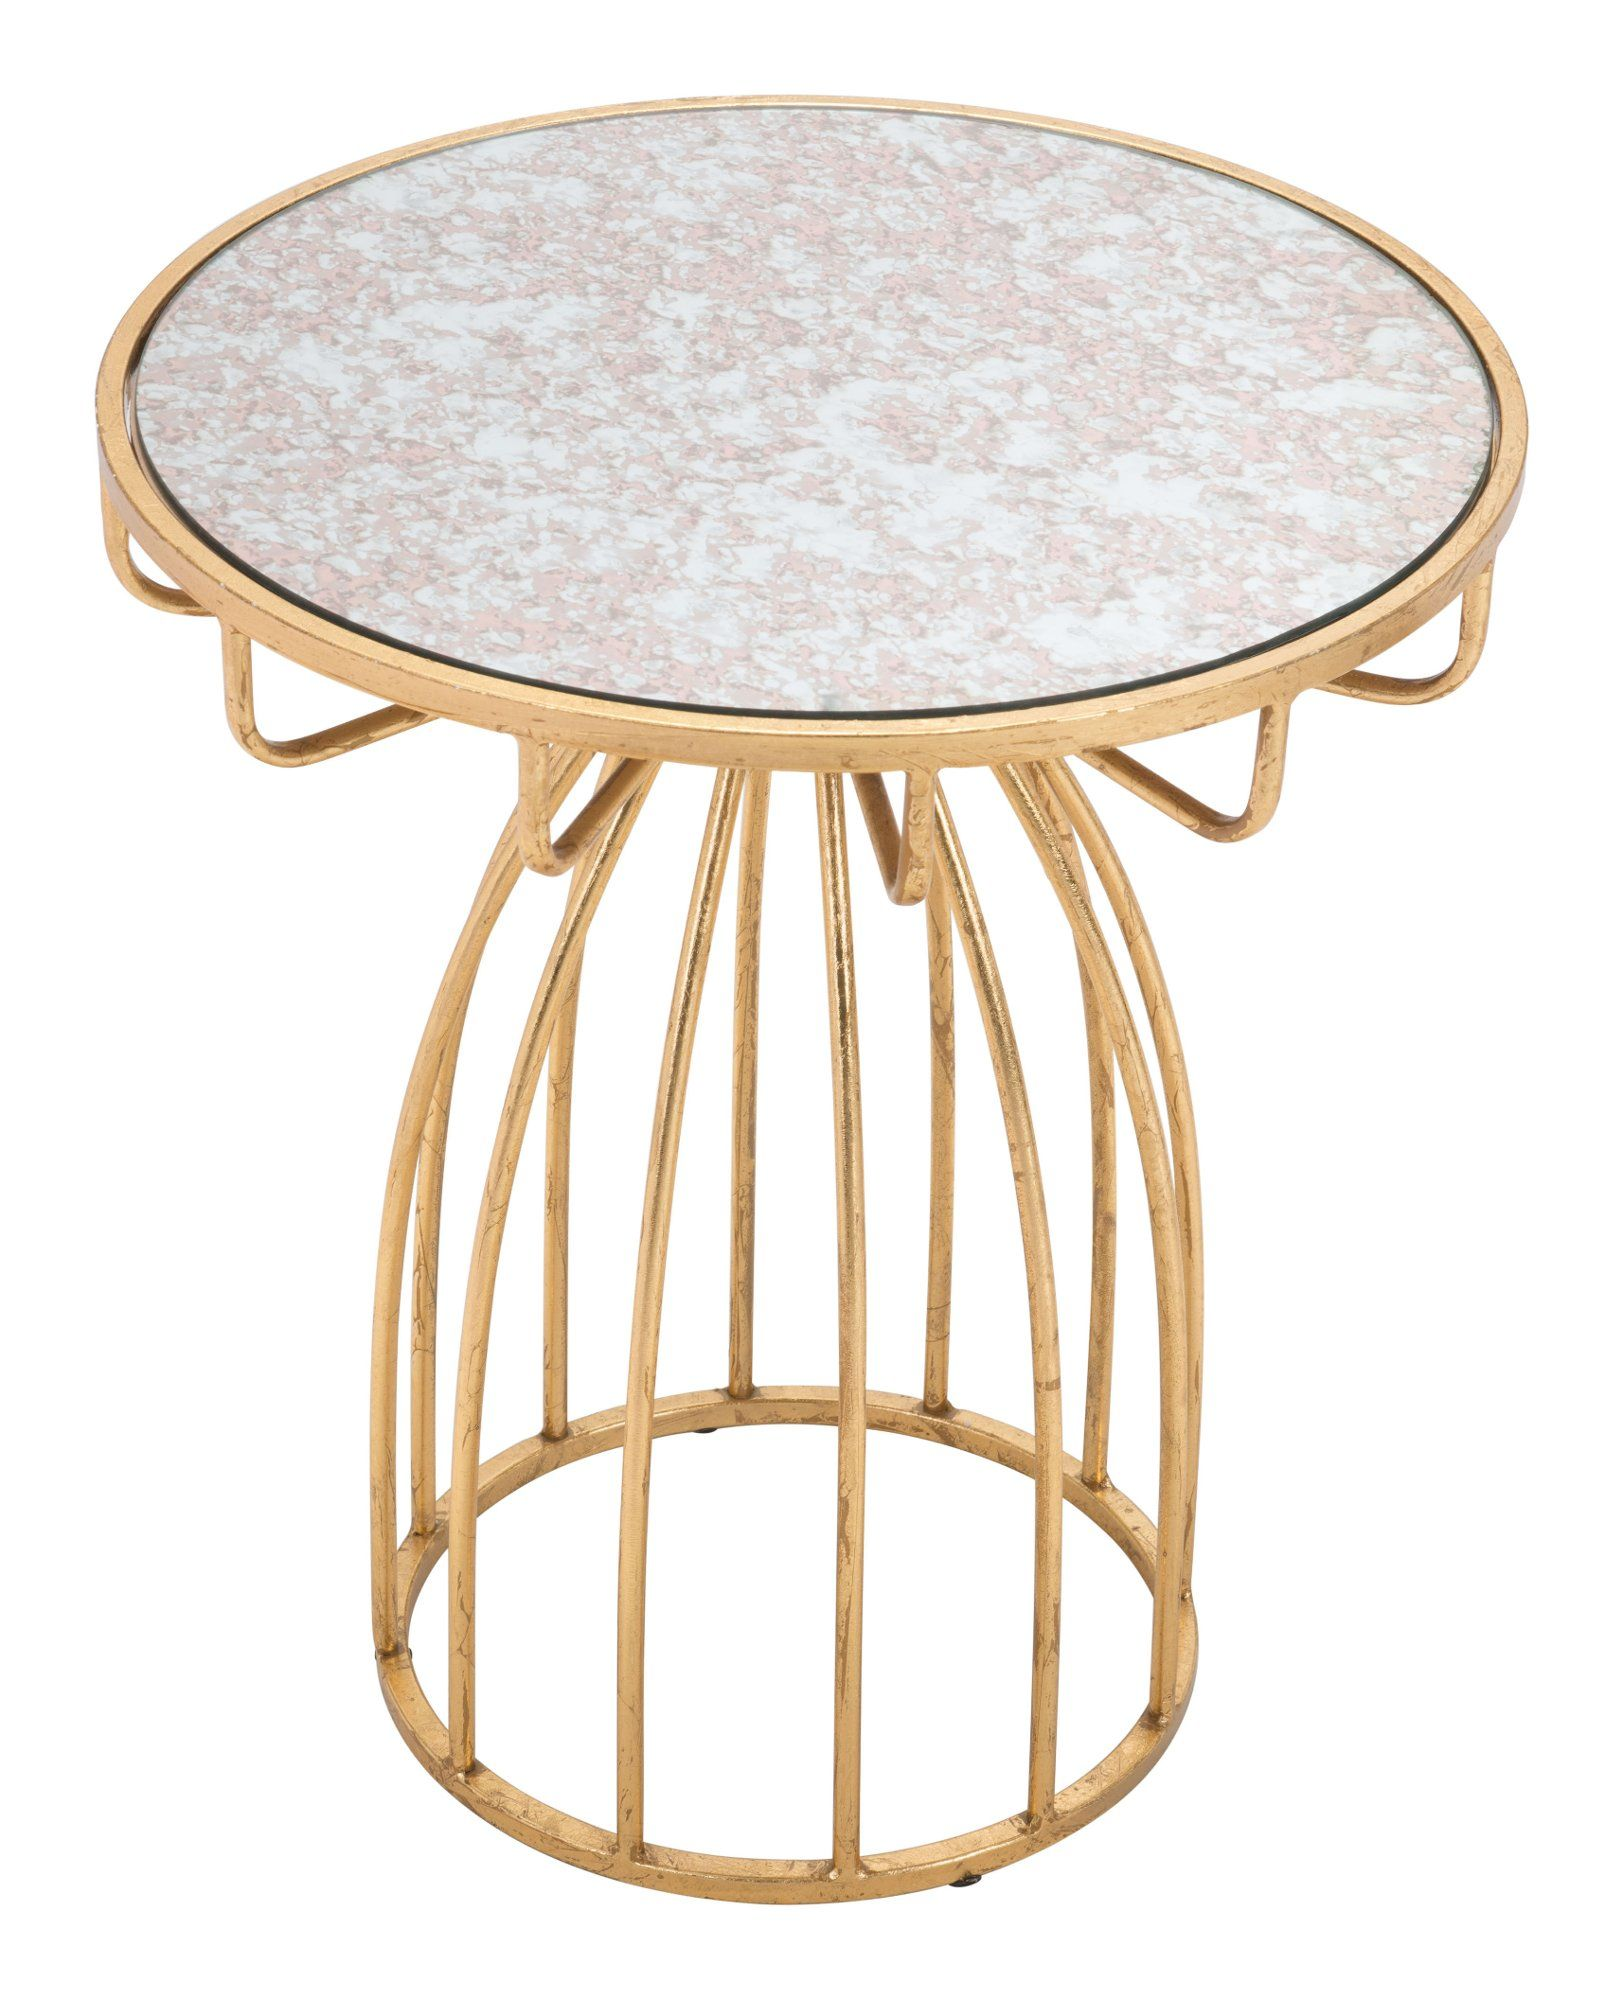 Glam Round End Table Silo In 2021 Accent Side Table Side Table Mirror Table [ 2000 x 1623 Pixel ]